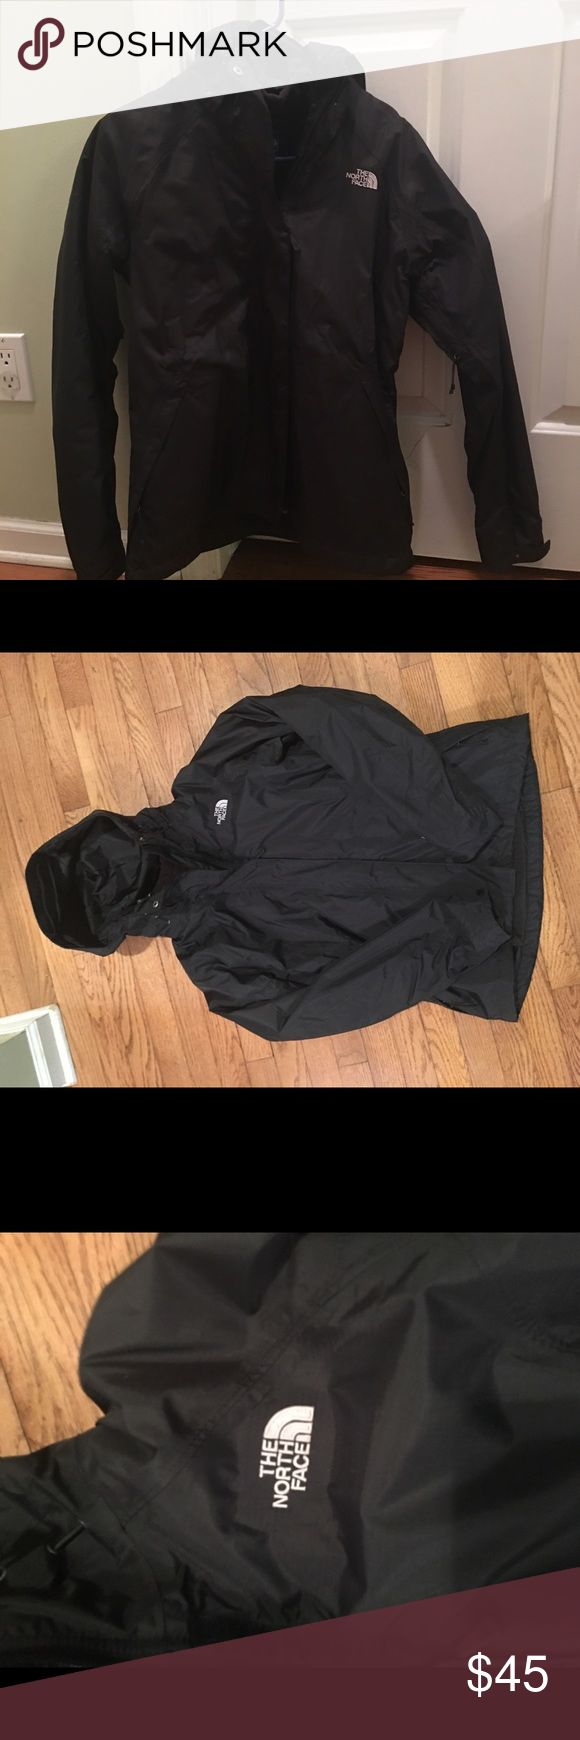 North Face Women Rain Coat Black Sz M North Face Women Black raincoat only worn a couple of times SZ M. The North Face Jackets & Coats Trench Coats